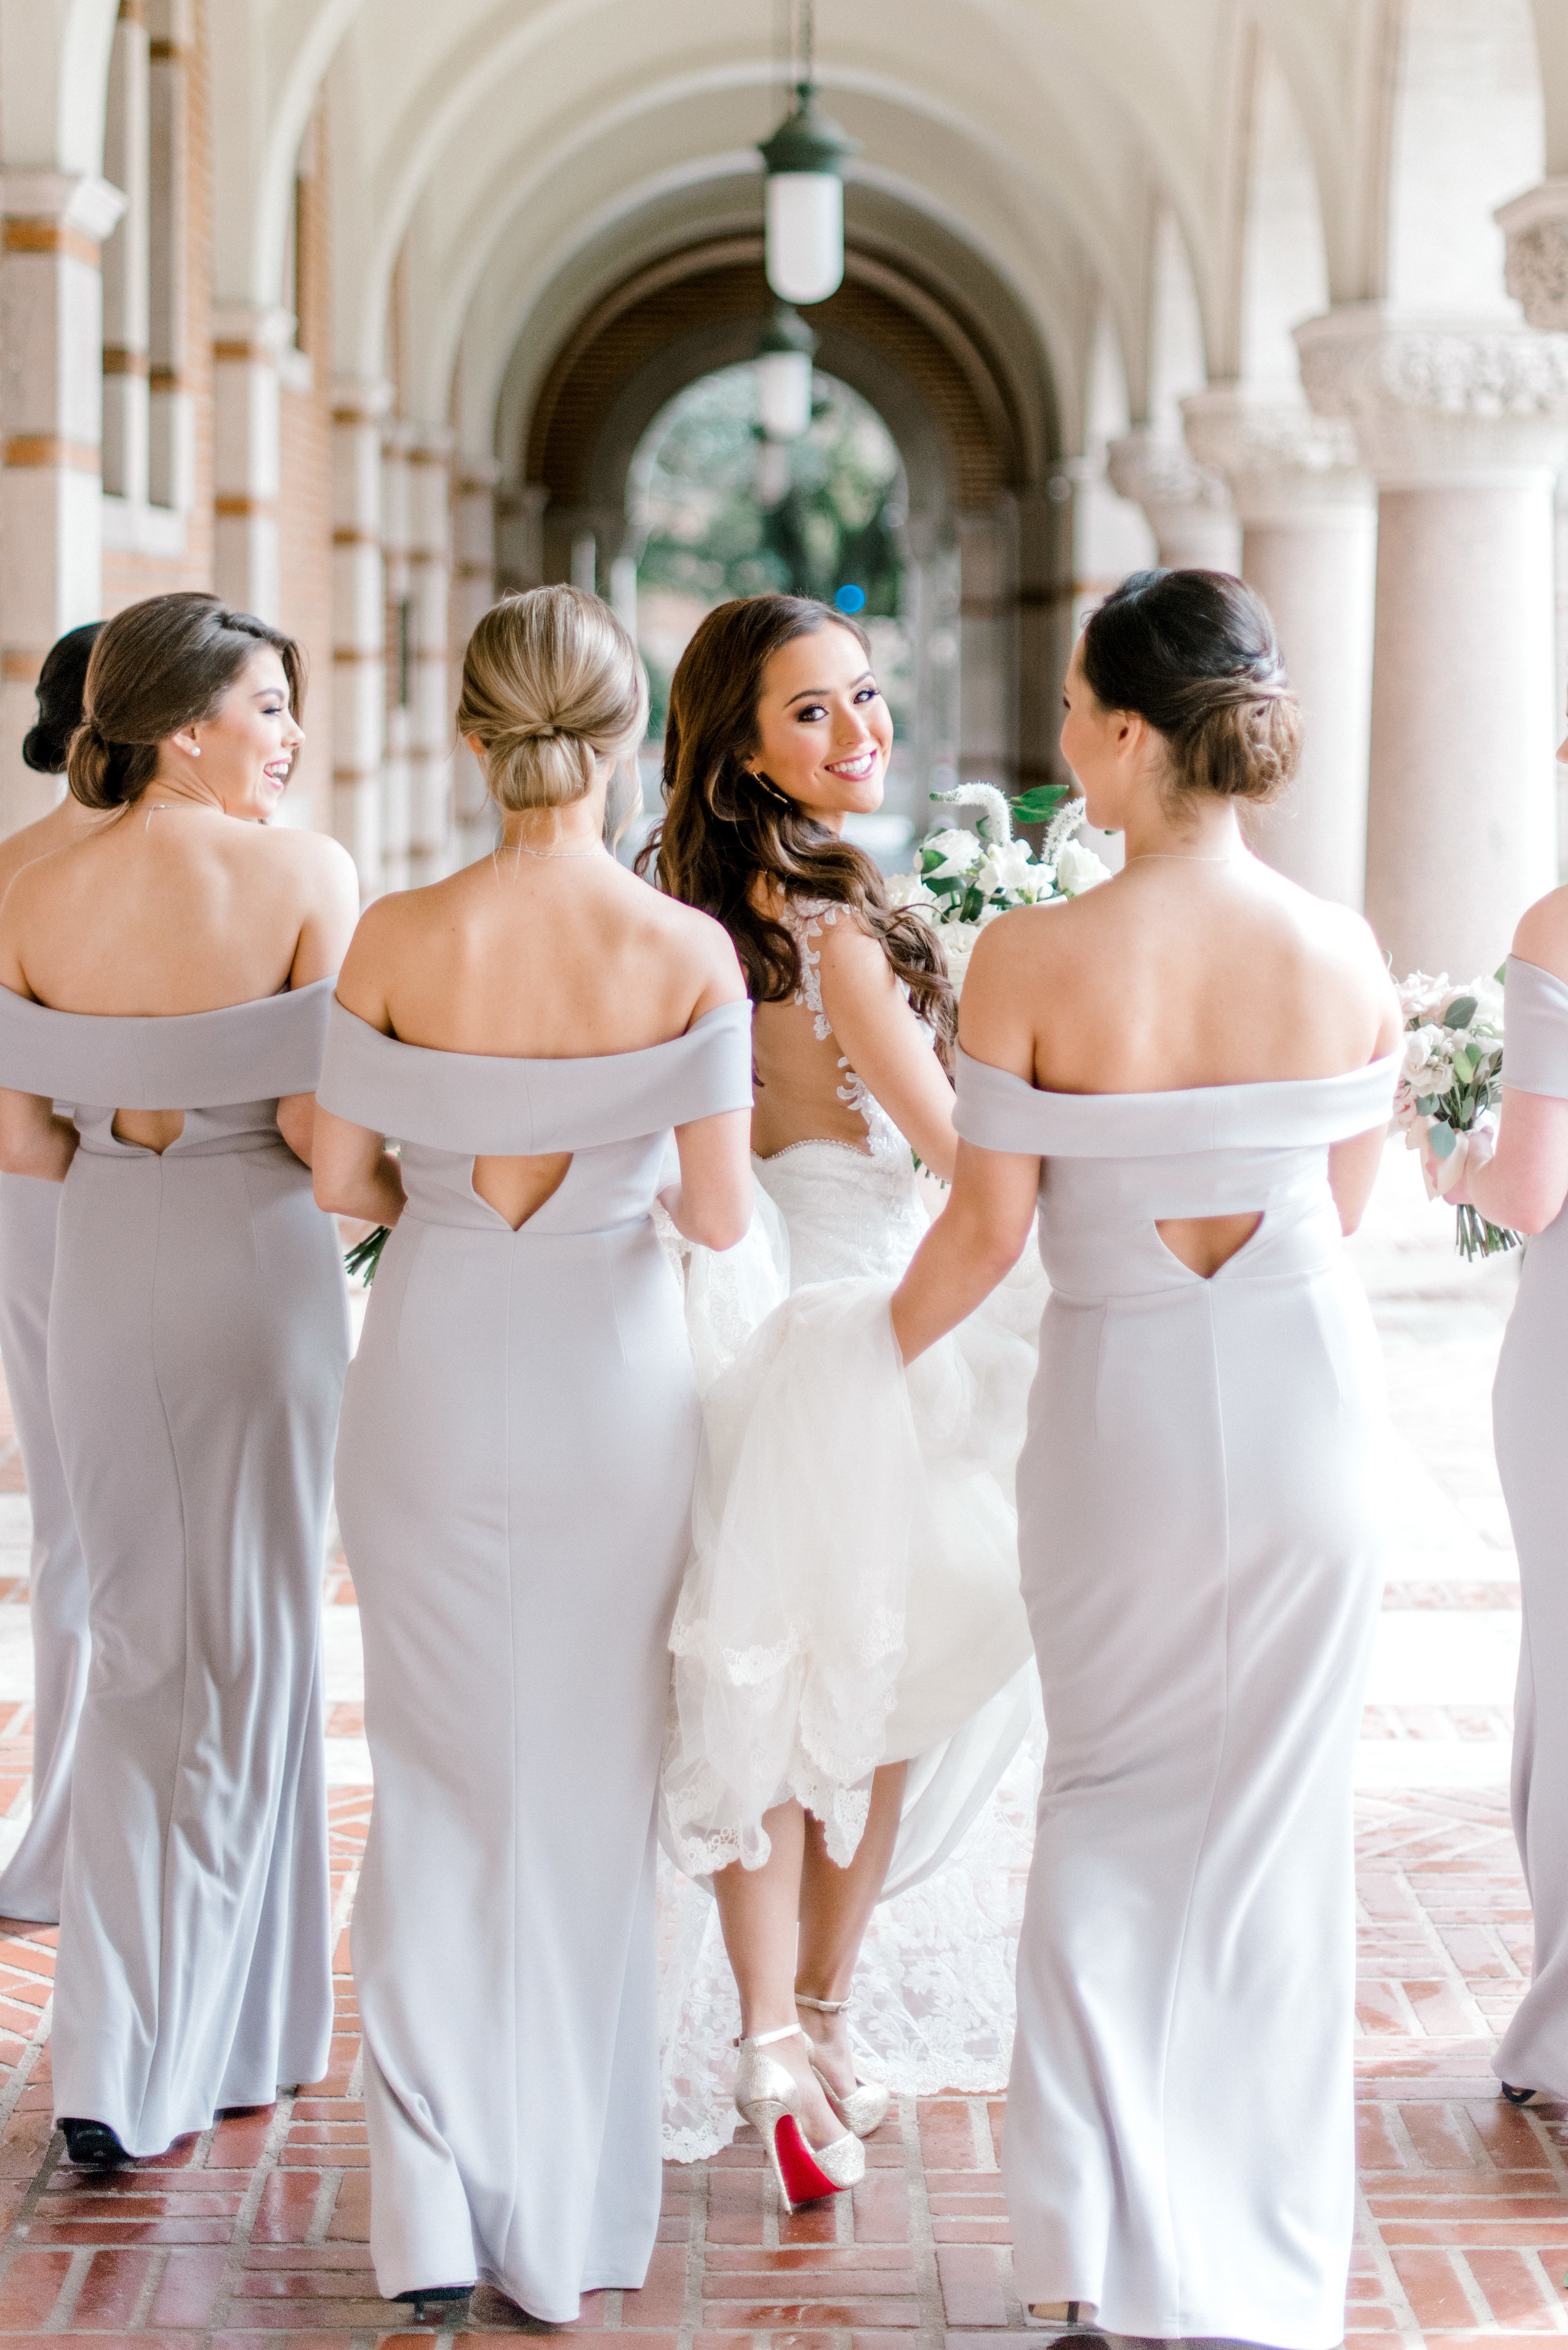 unique bridesmaid dresses off the shoulder houston wedding.jpg